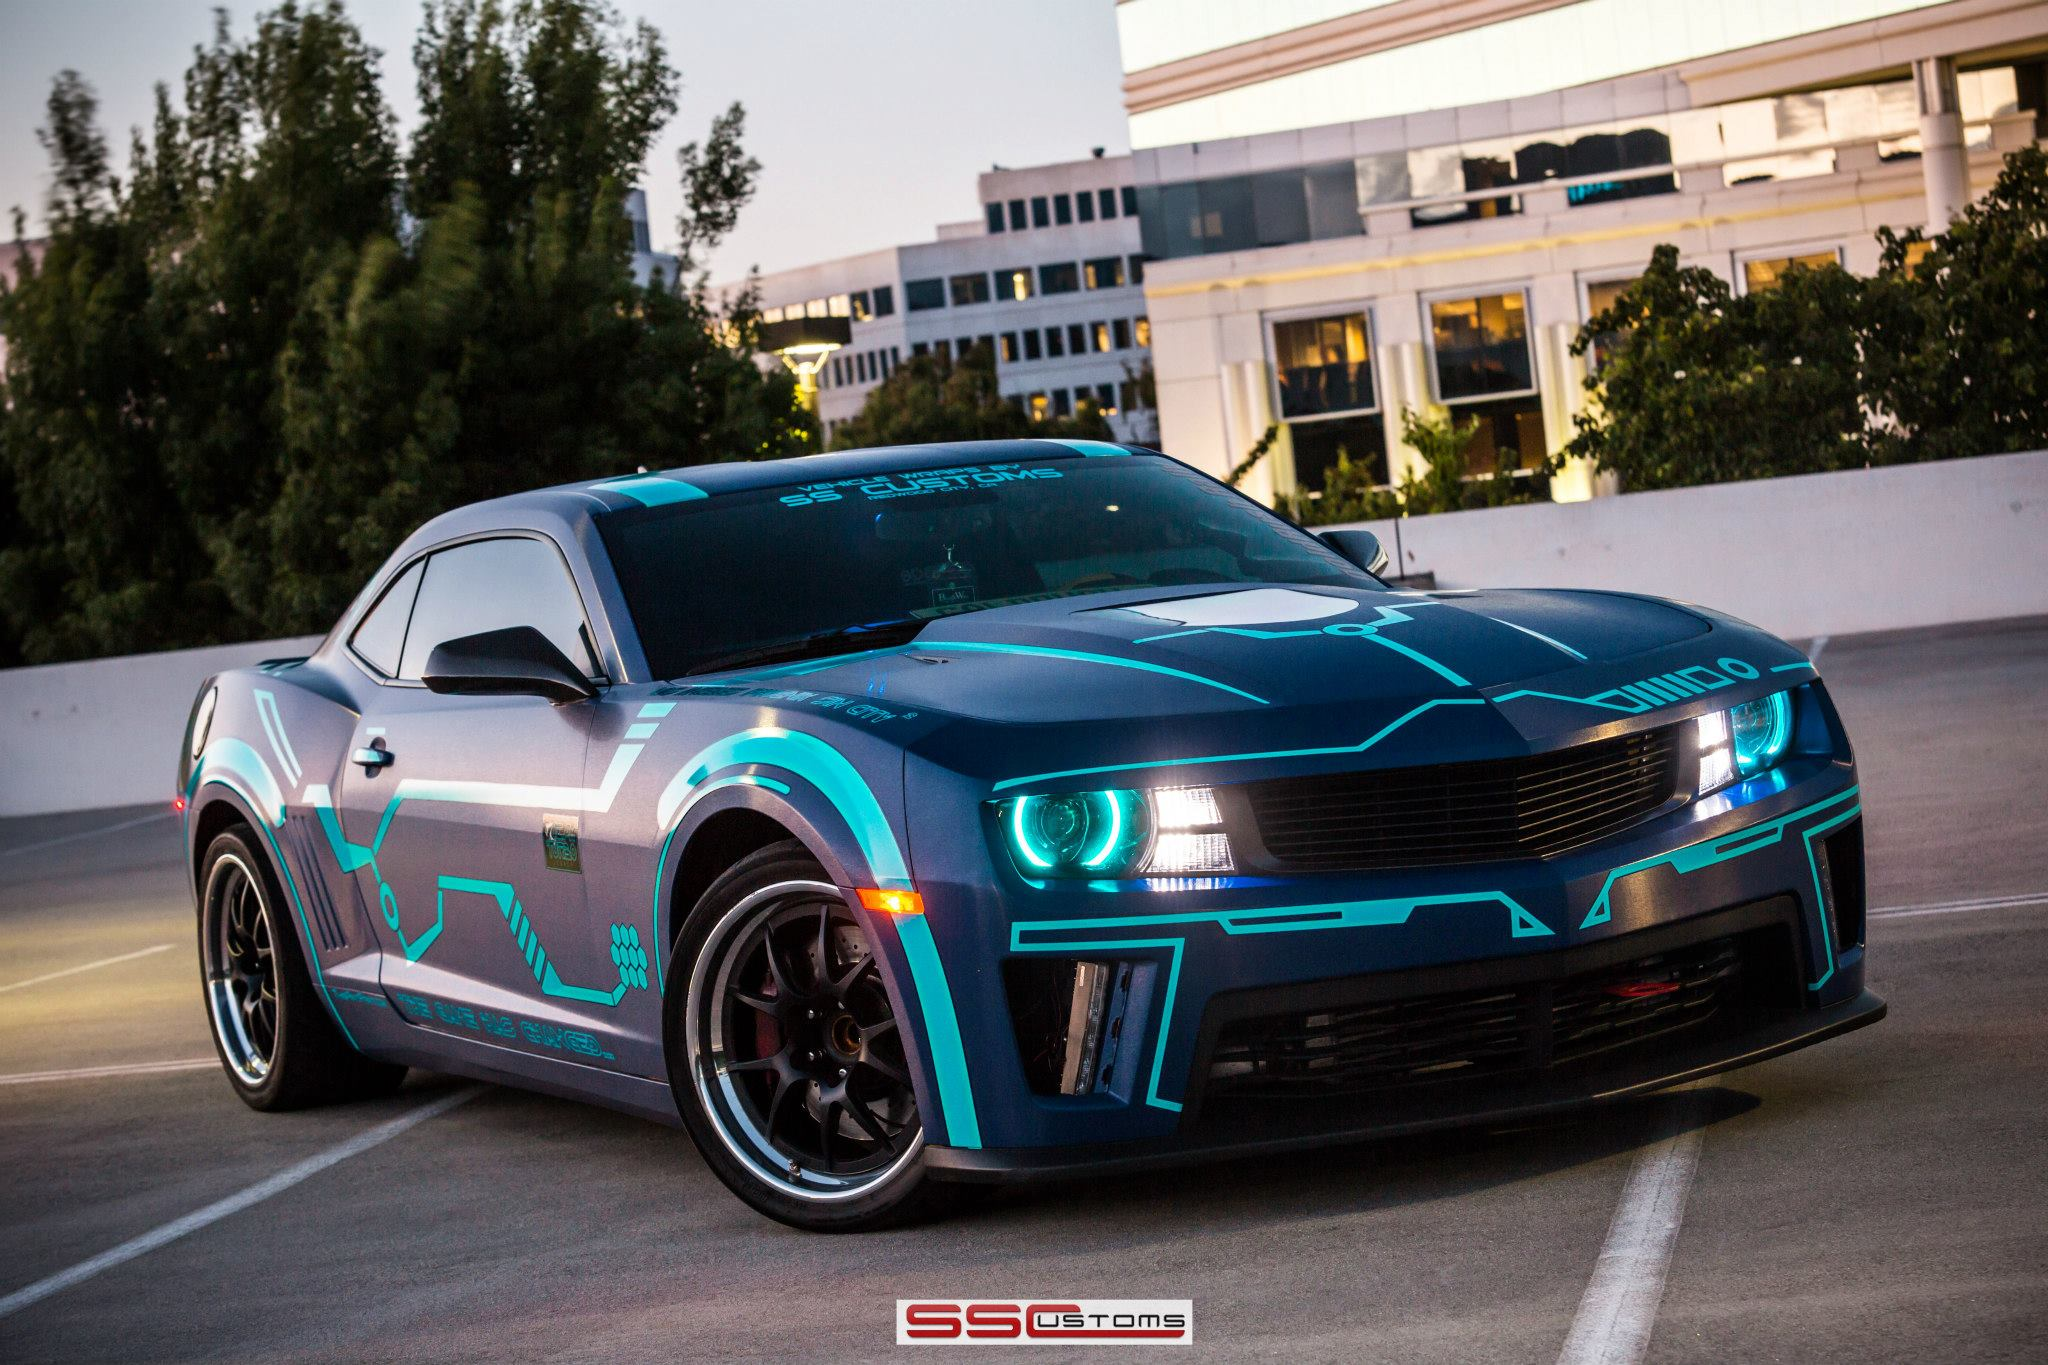 2013 ss customs chevrolet camaro tuning muscle tron movies sci fi science sci w wallpaper. Black Bedroom Furniture Sets. Home Design Ideas